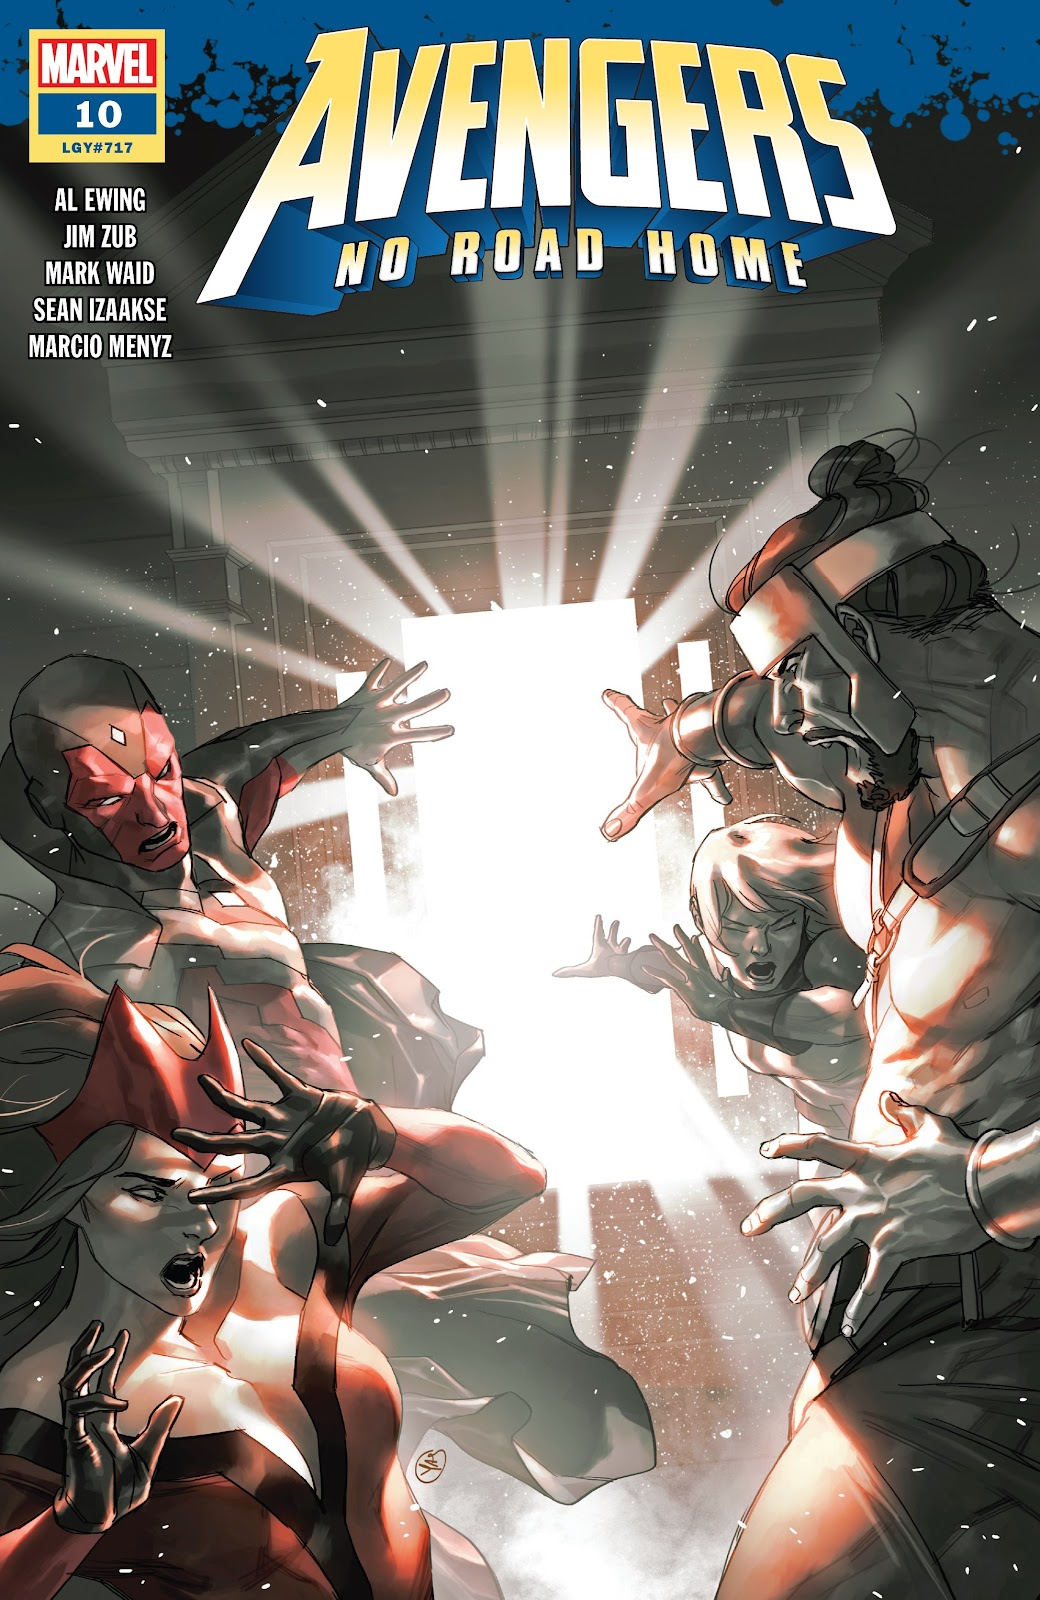 Read online Avengers No Road Home comic -  Issue #10 - 1